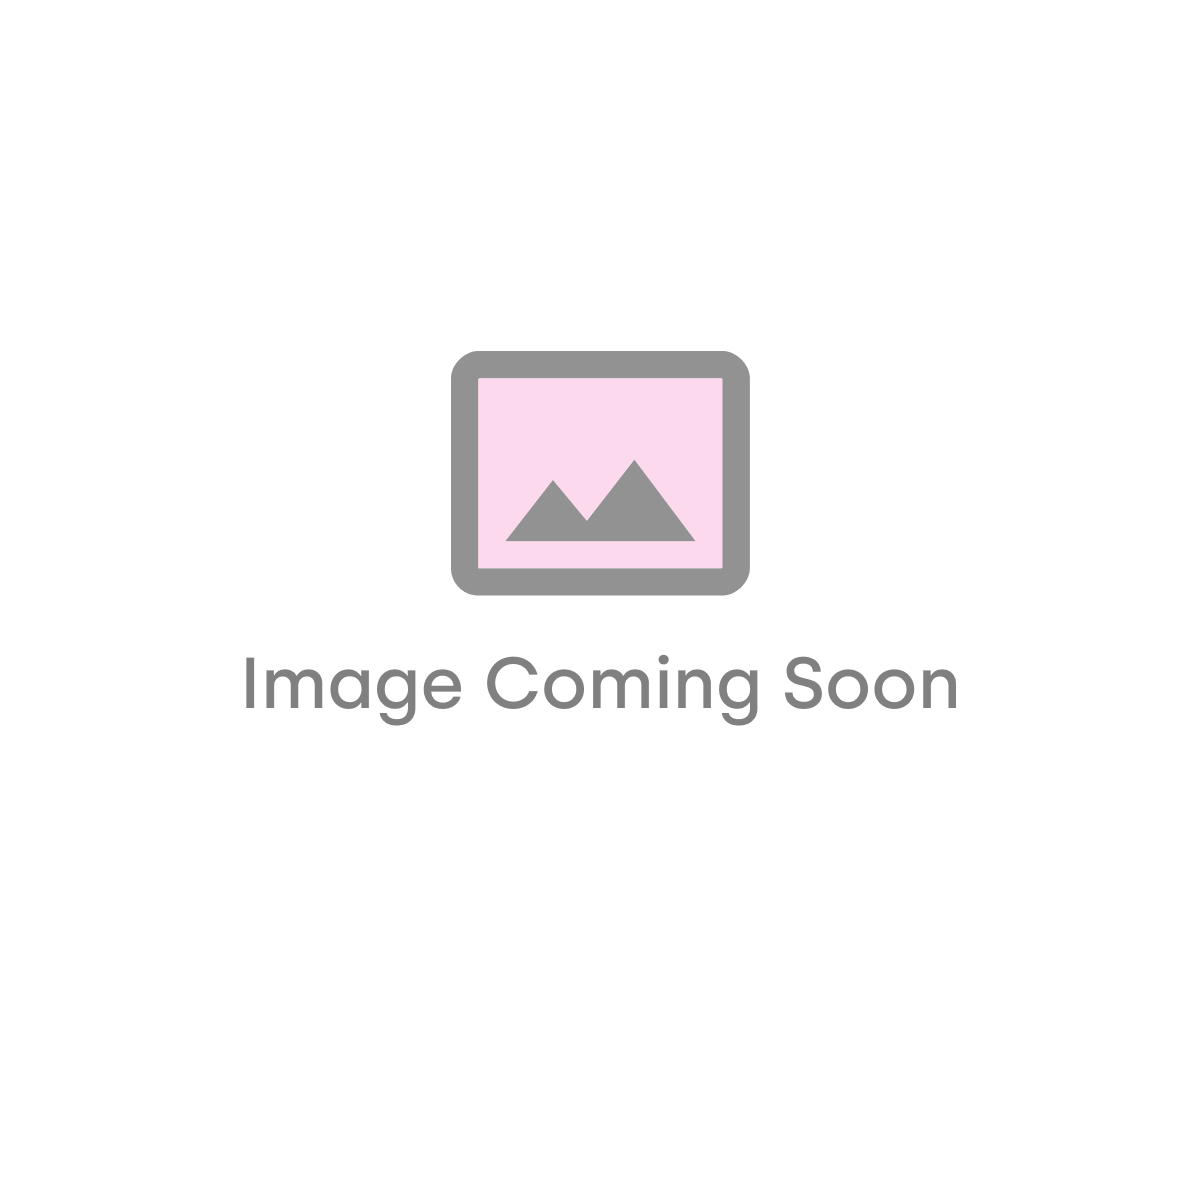 Aquadart 10 700mm Wetroom Panel - Smoked Glass (18678)